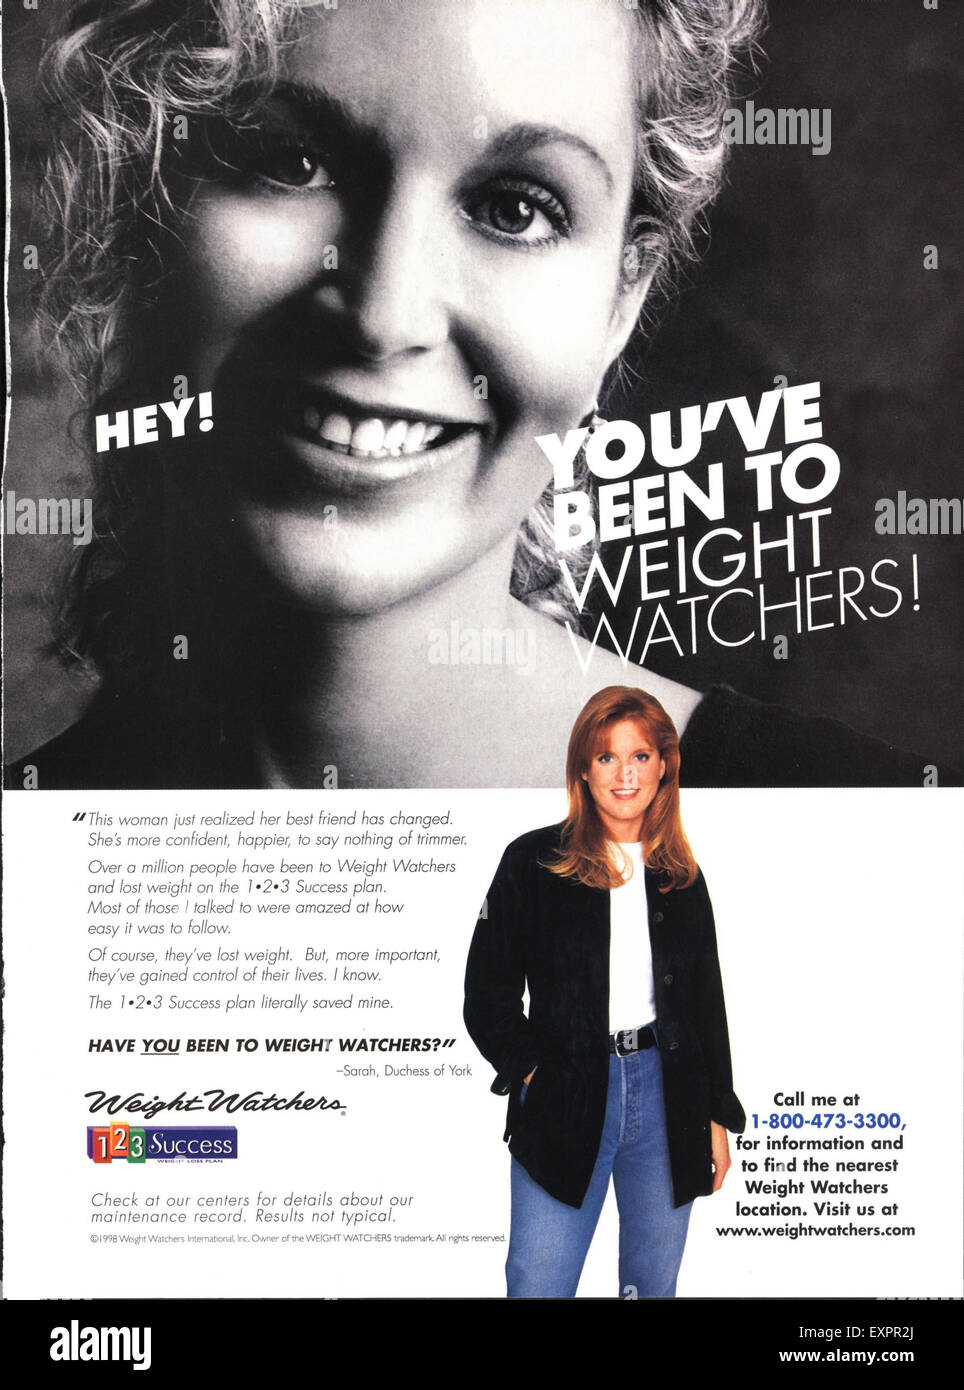 1990s USA Weight Watchers Magazine Advert - Stock Image